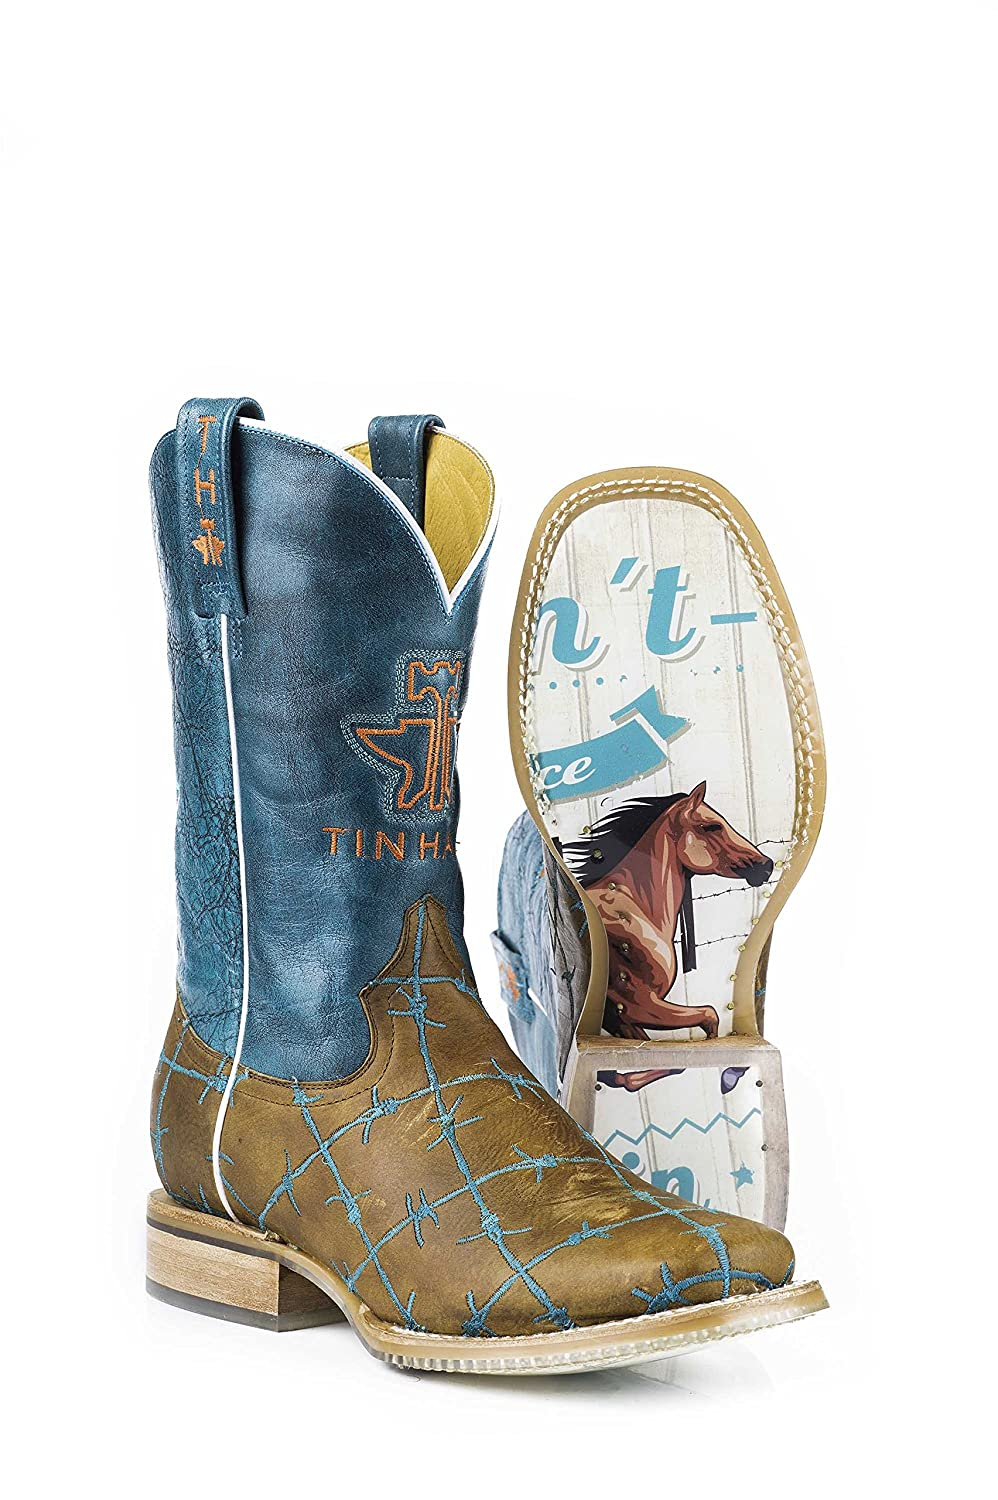 Tin Haul Shoes Women's Barb'd Wire Western Boot B00U05LWYI 6.5 B(M) US|Brown/Turquoise